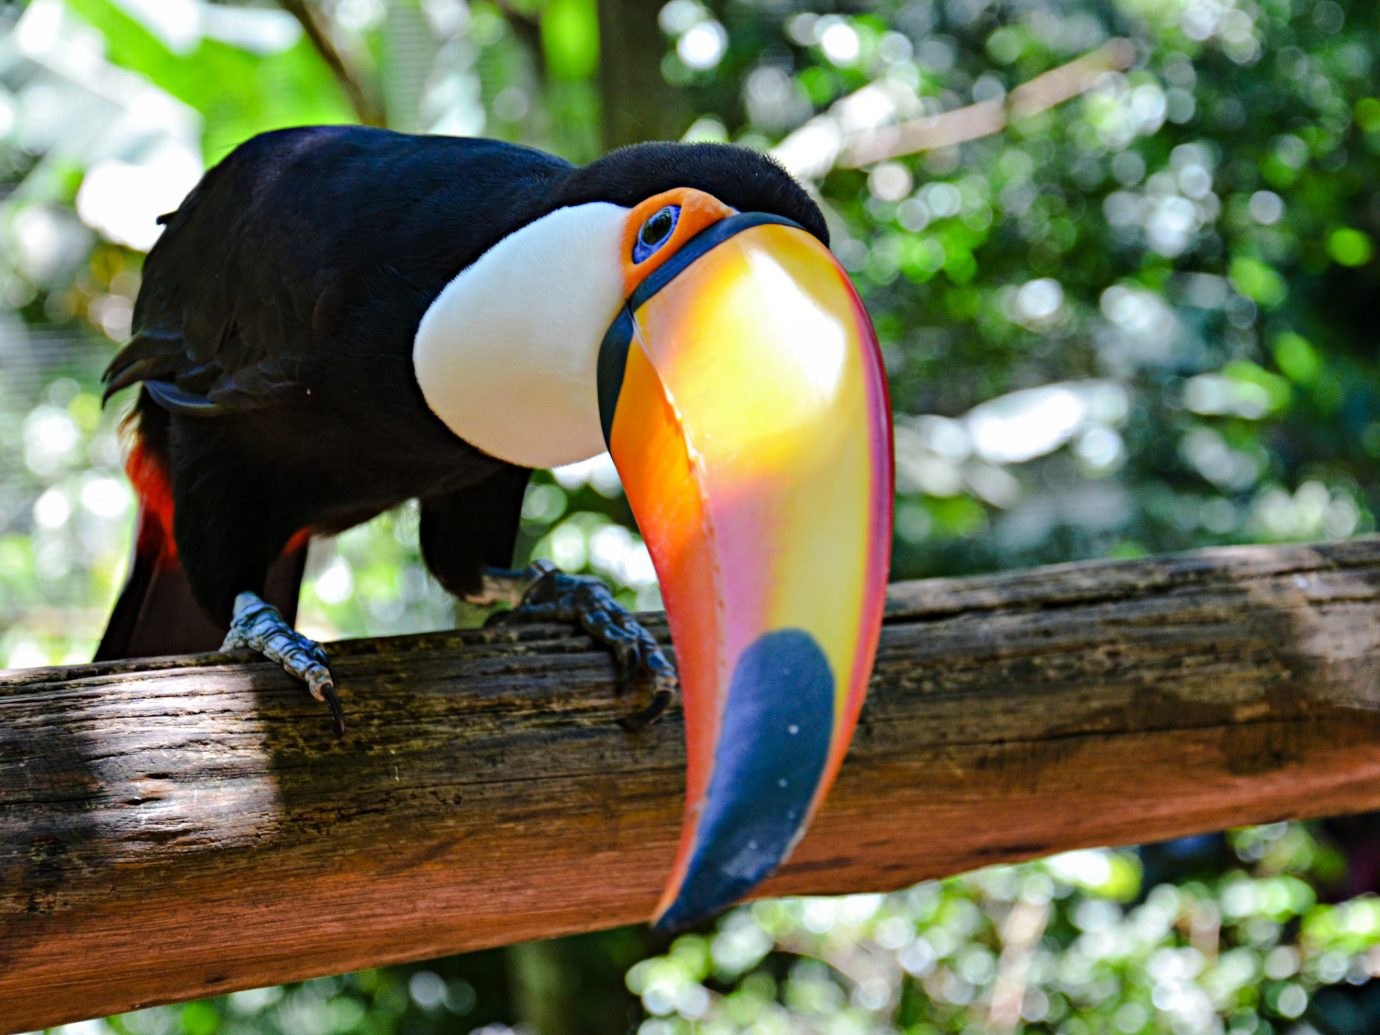 Beaches Brazil Trip Ideas tree outdoor toucan Bird beak fauna wooden animal perched black piciformes Wildlife macaw hornbill branch wood colorful colored